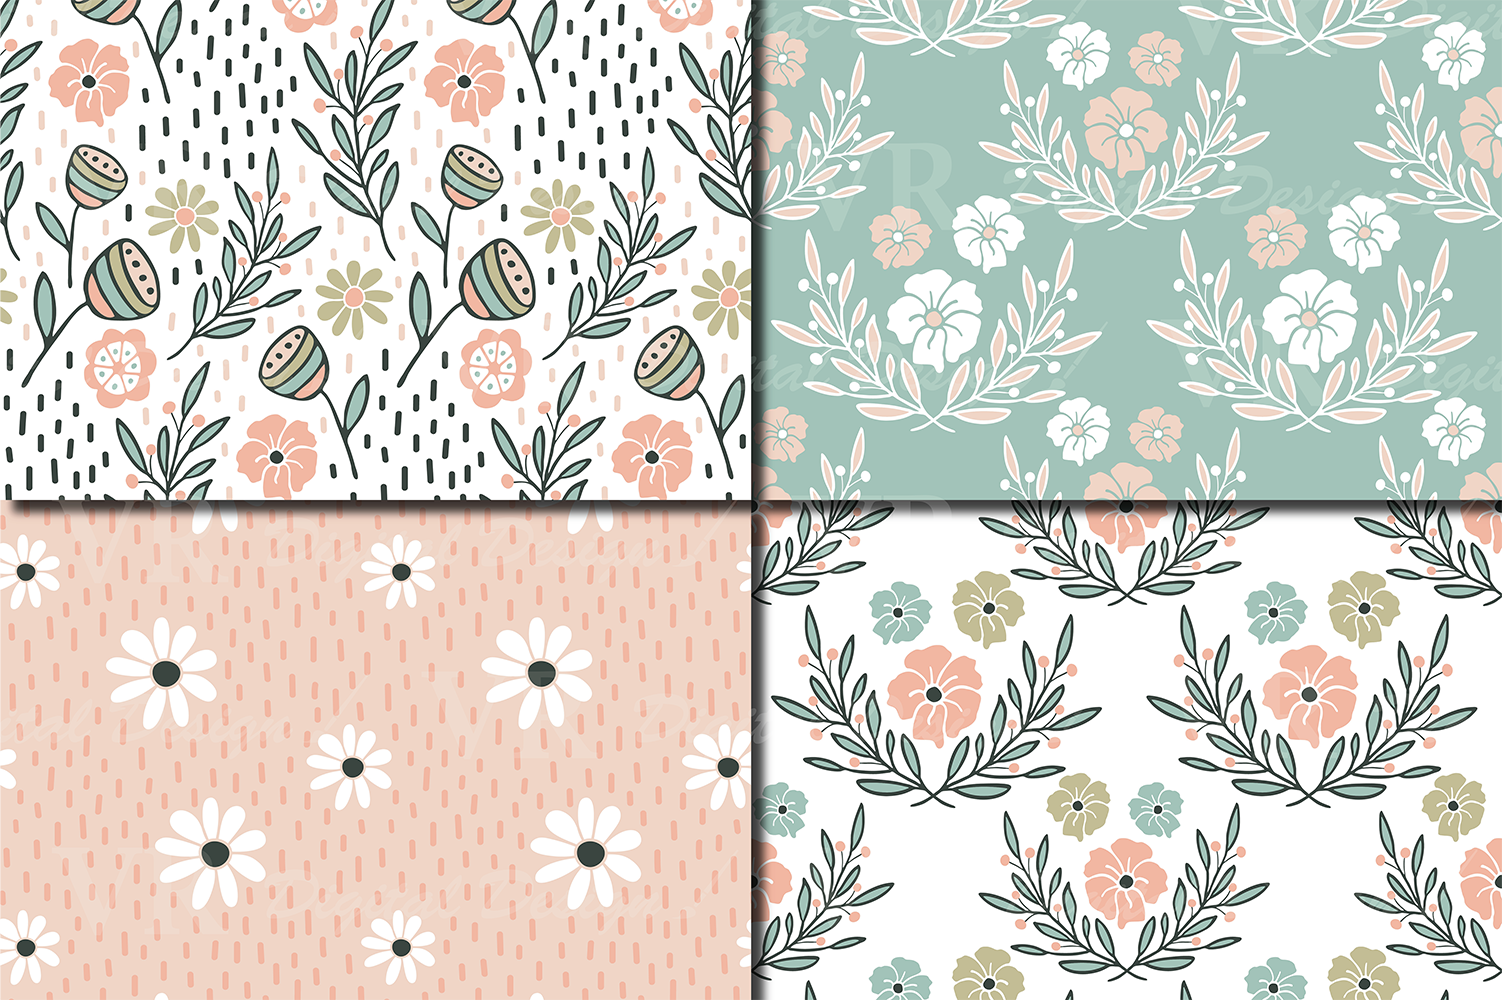 Romantic Floral Seamless Digital Paper Pastel Floral Patterns By